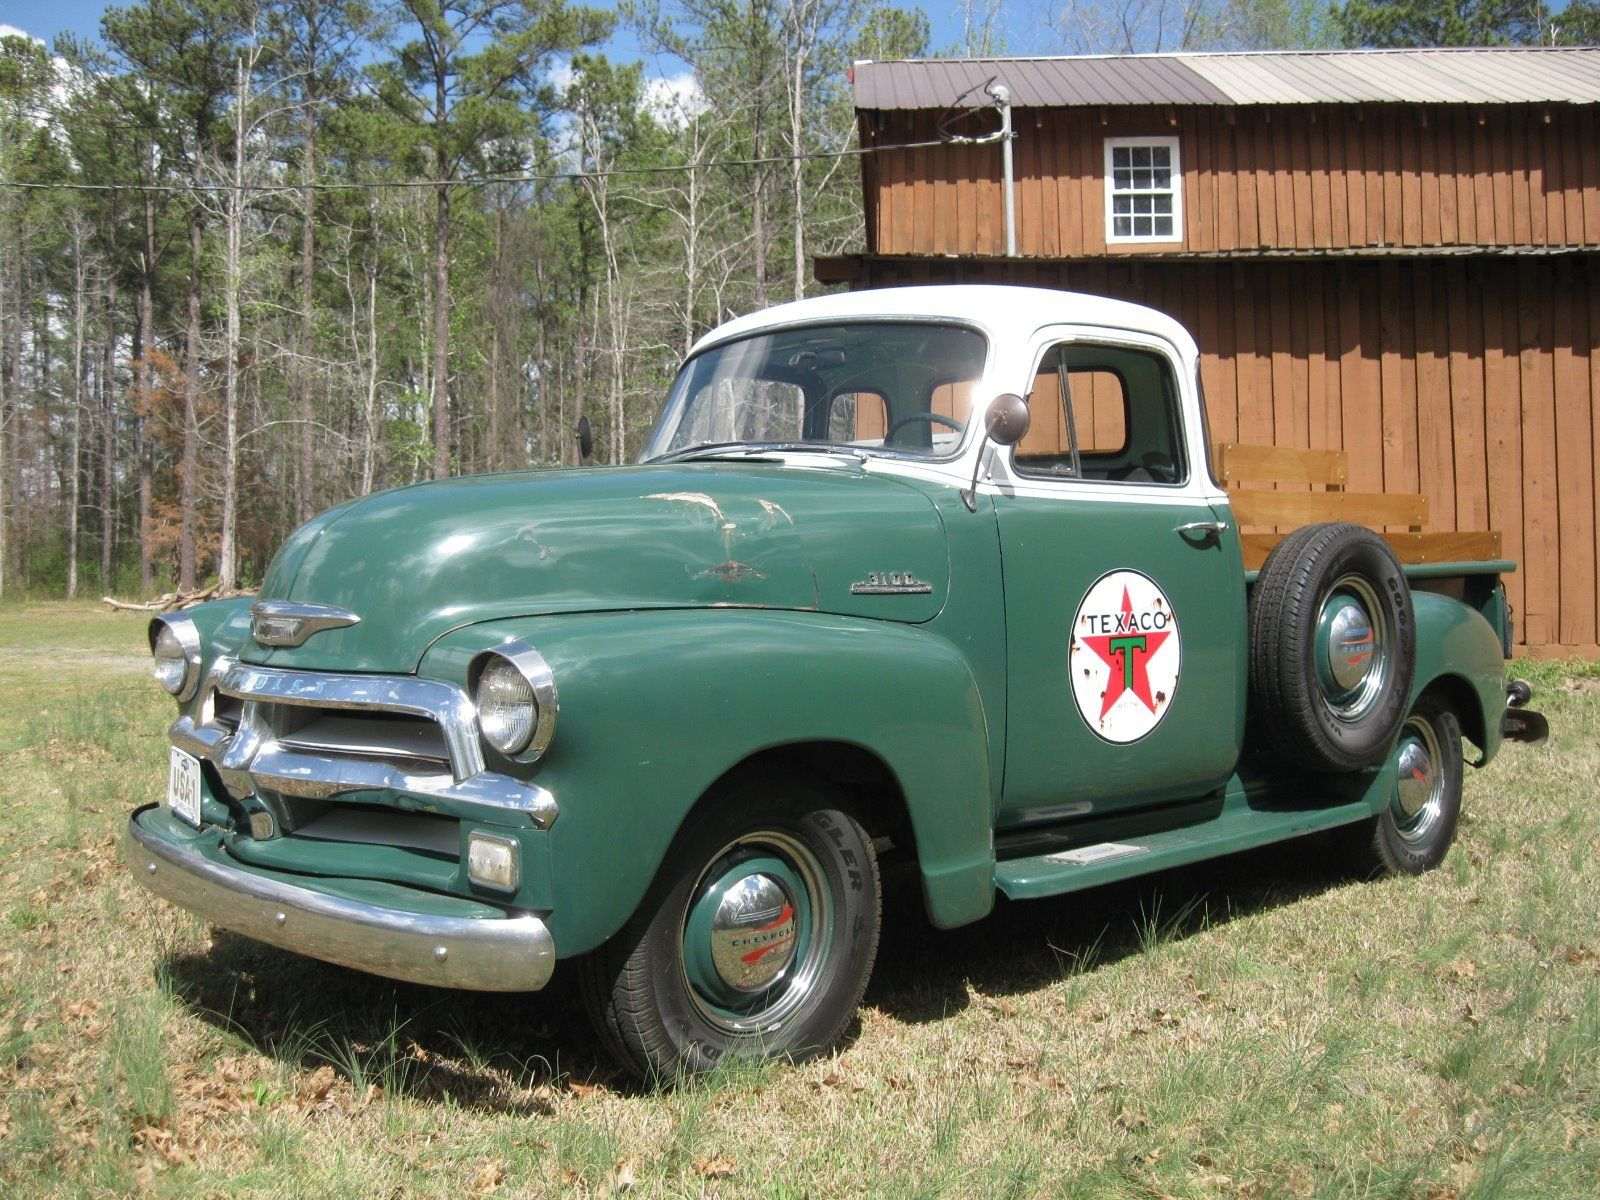 1954 Chevy Truck Bed For Sale Chevrolet Pickup California Rust Free With Low Miles